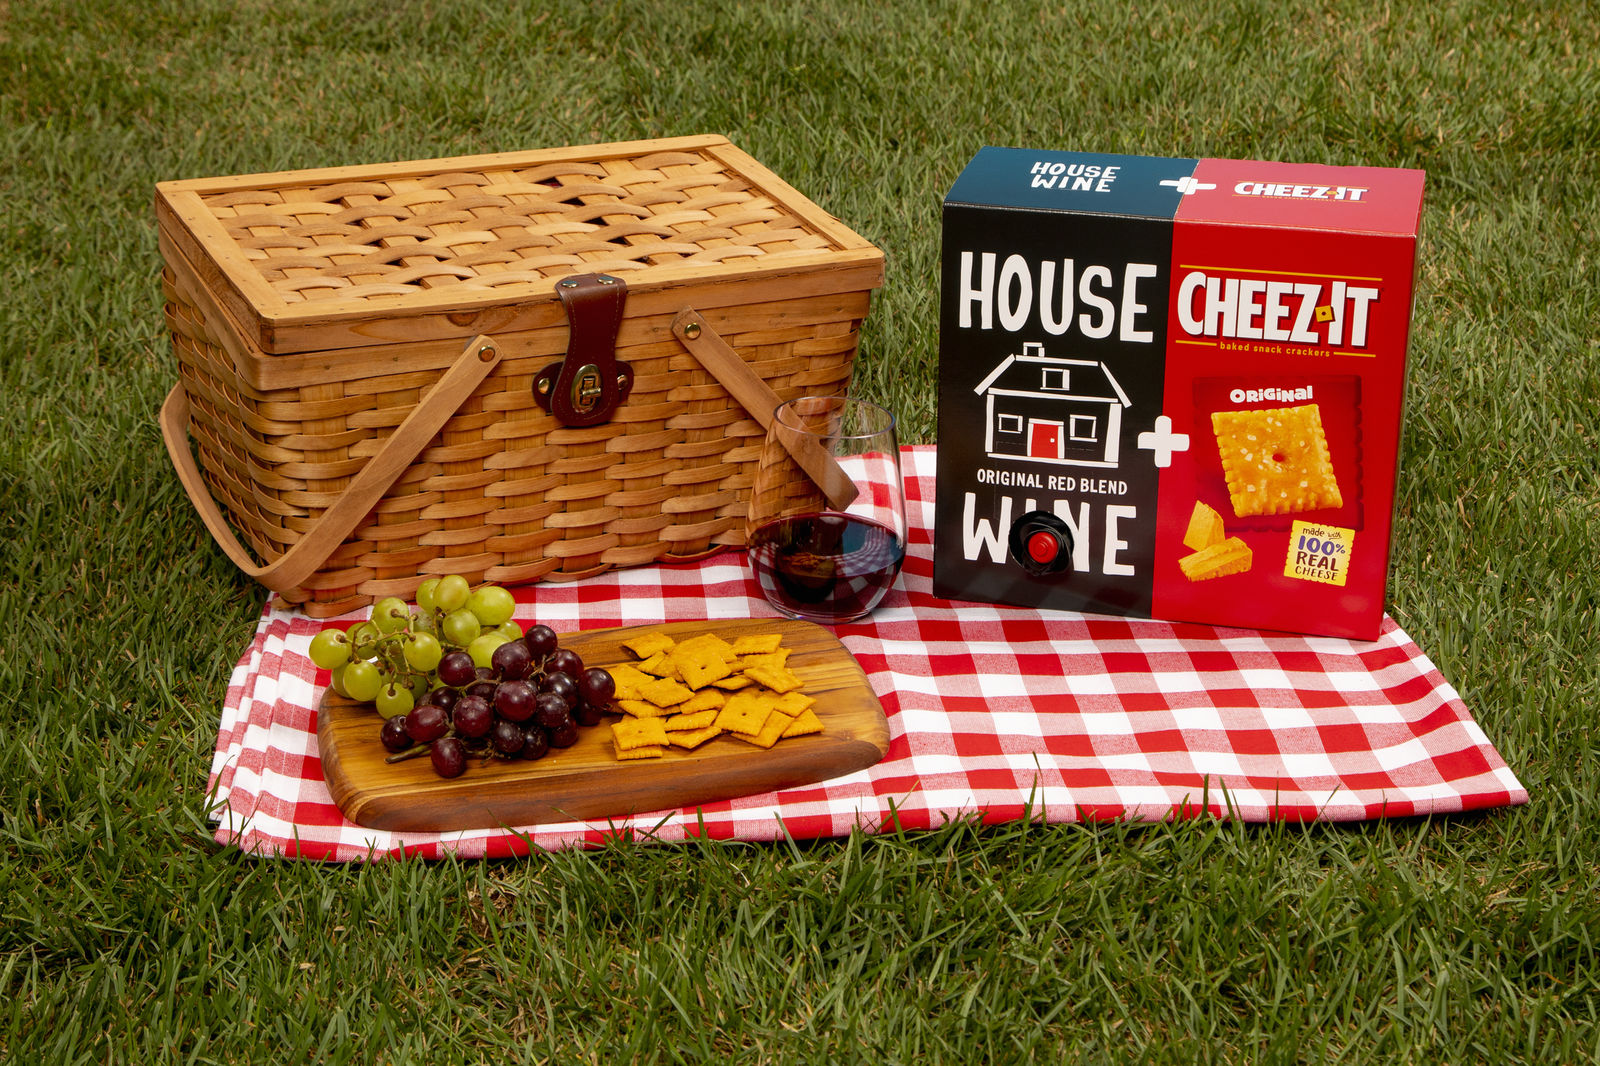 Some say there is no better pairing than wine and cheese—until now. Cheez-Itand House Wine are collaborating to create the ultimate summer duo: House Wine & Cheez-It. (Photo: Kellogg)